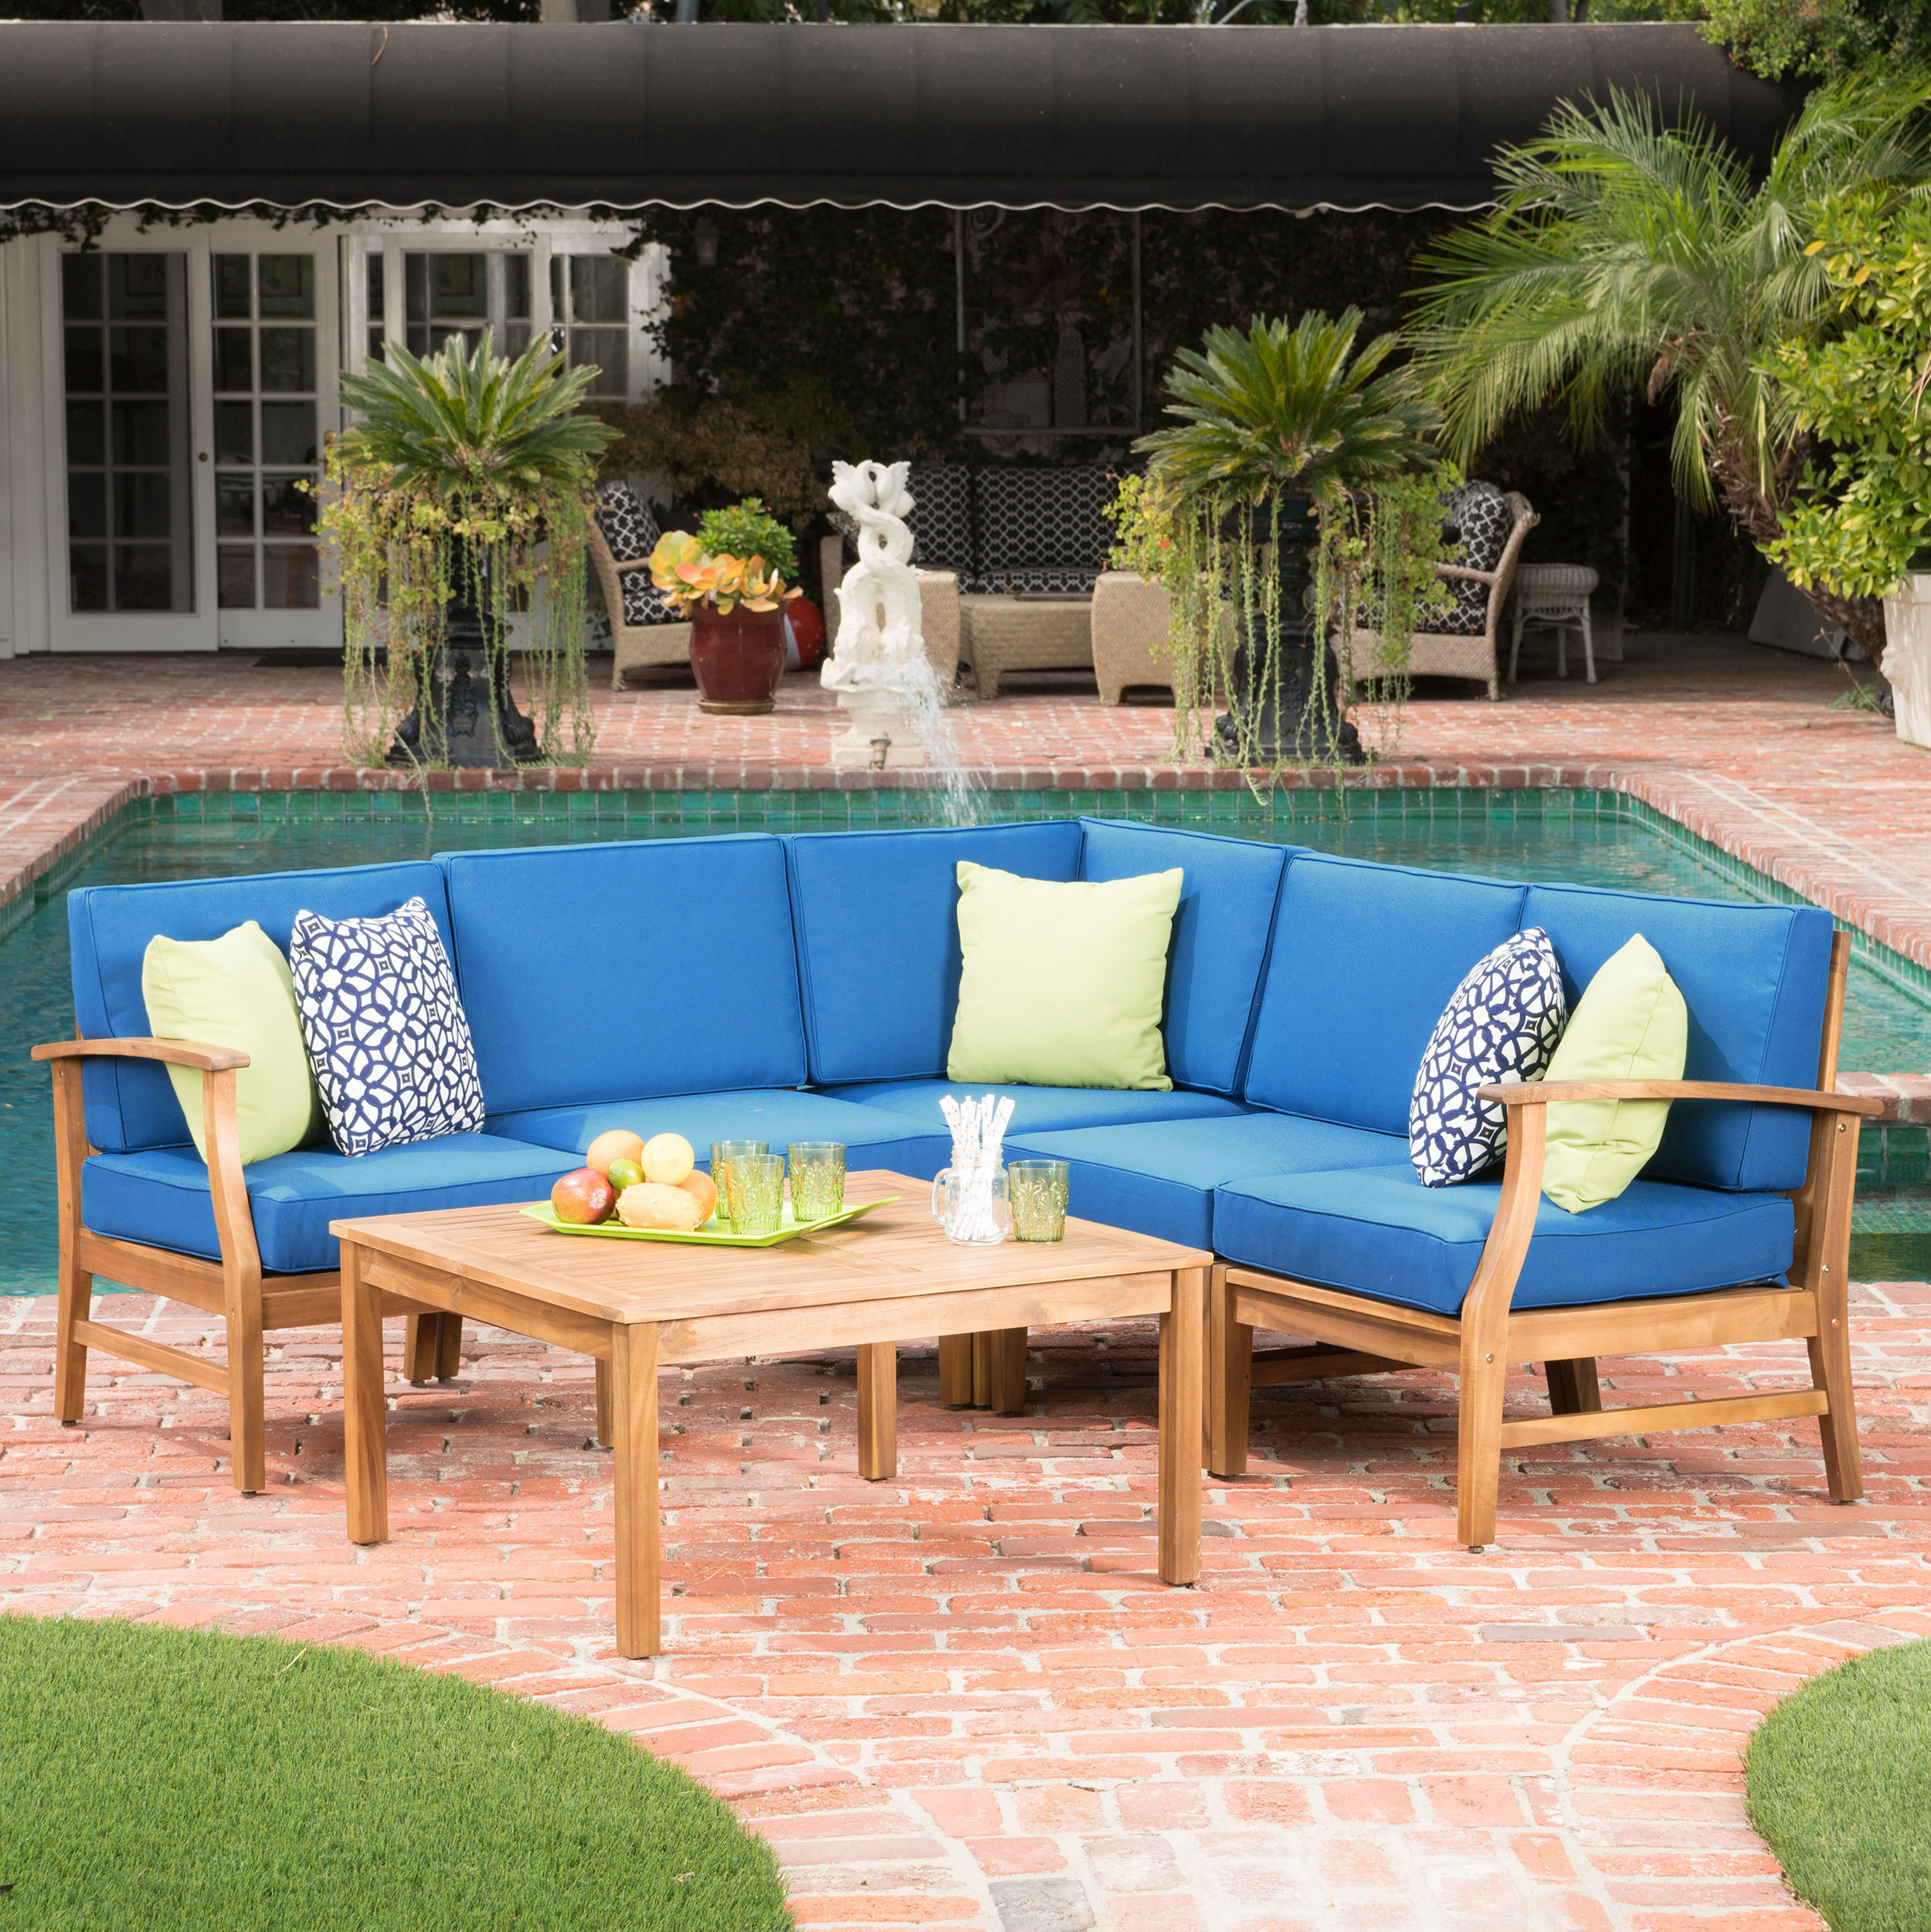 Cielo Terrace 6-Piece Outdoor Wood Conversation Set with Cushions, Blue